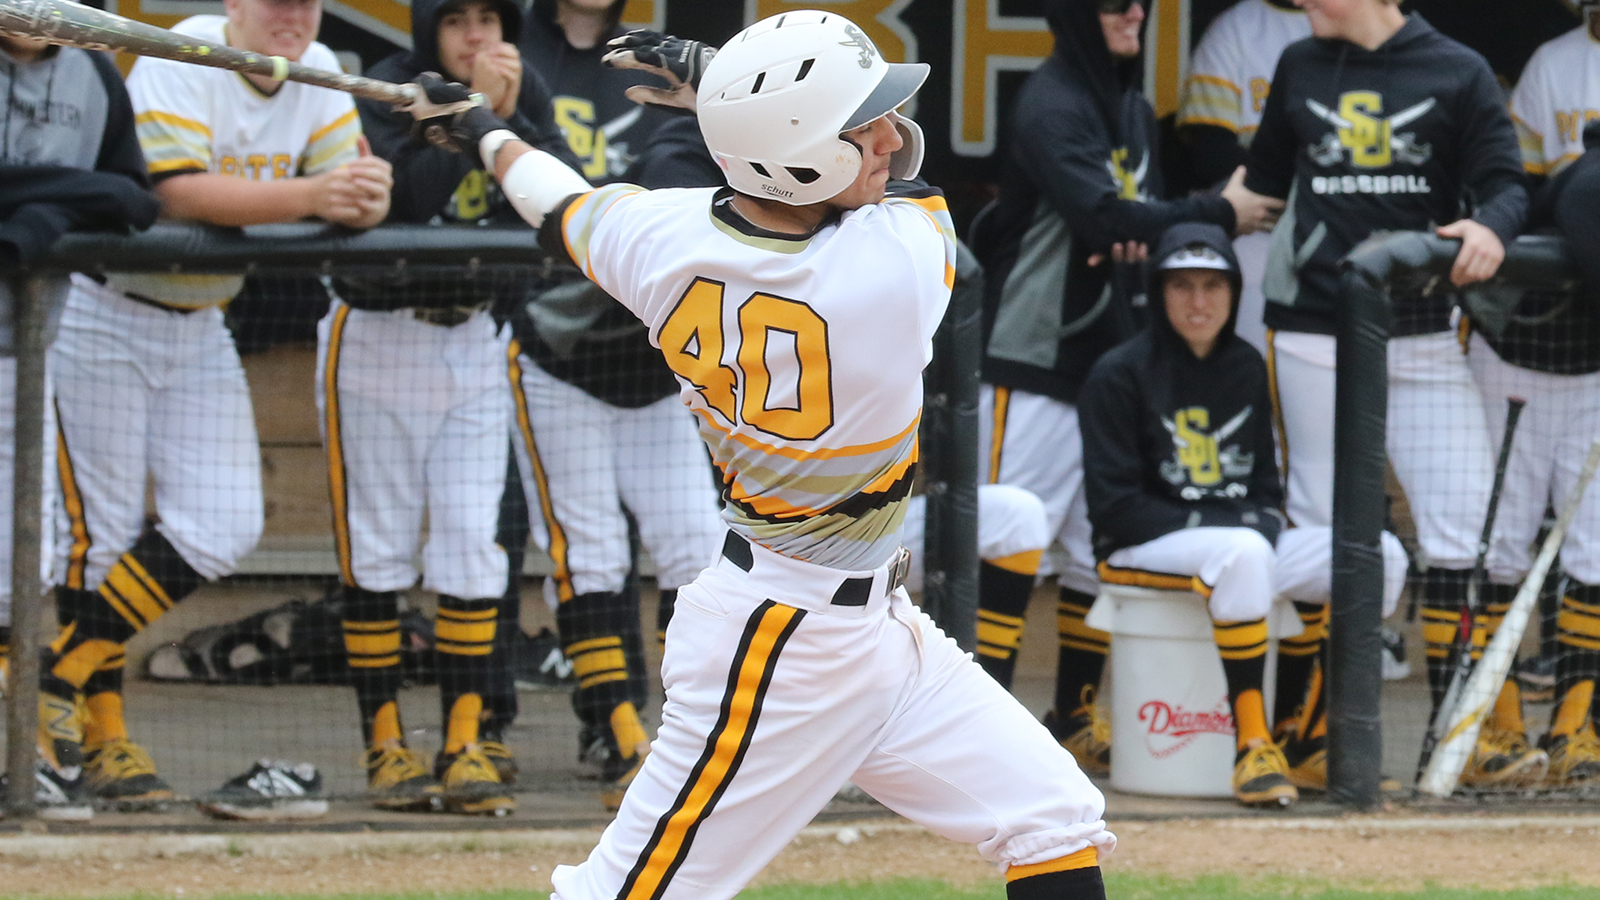 Baseball Falls to No. 14 Texas Lutheran in Series Opener